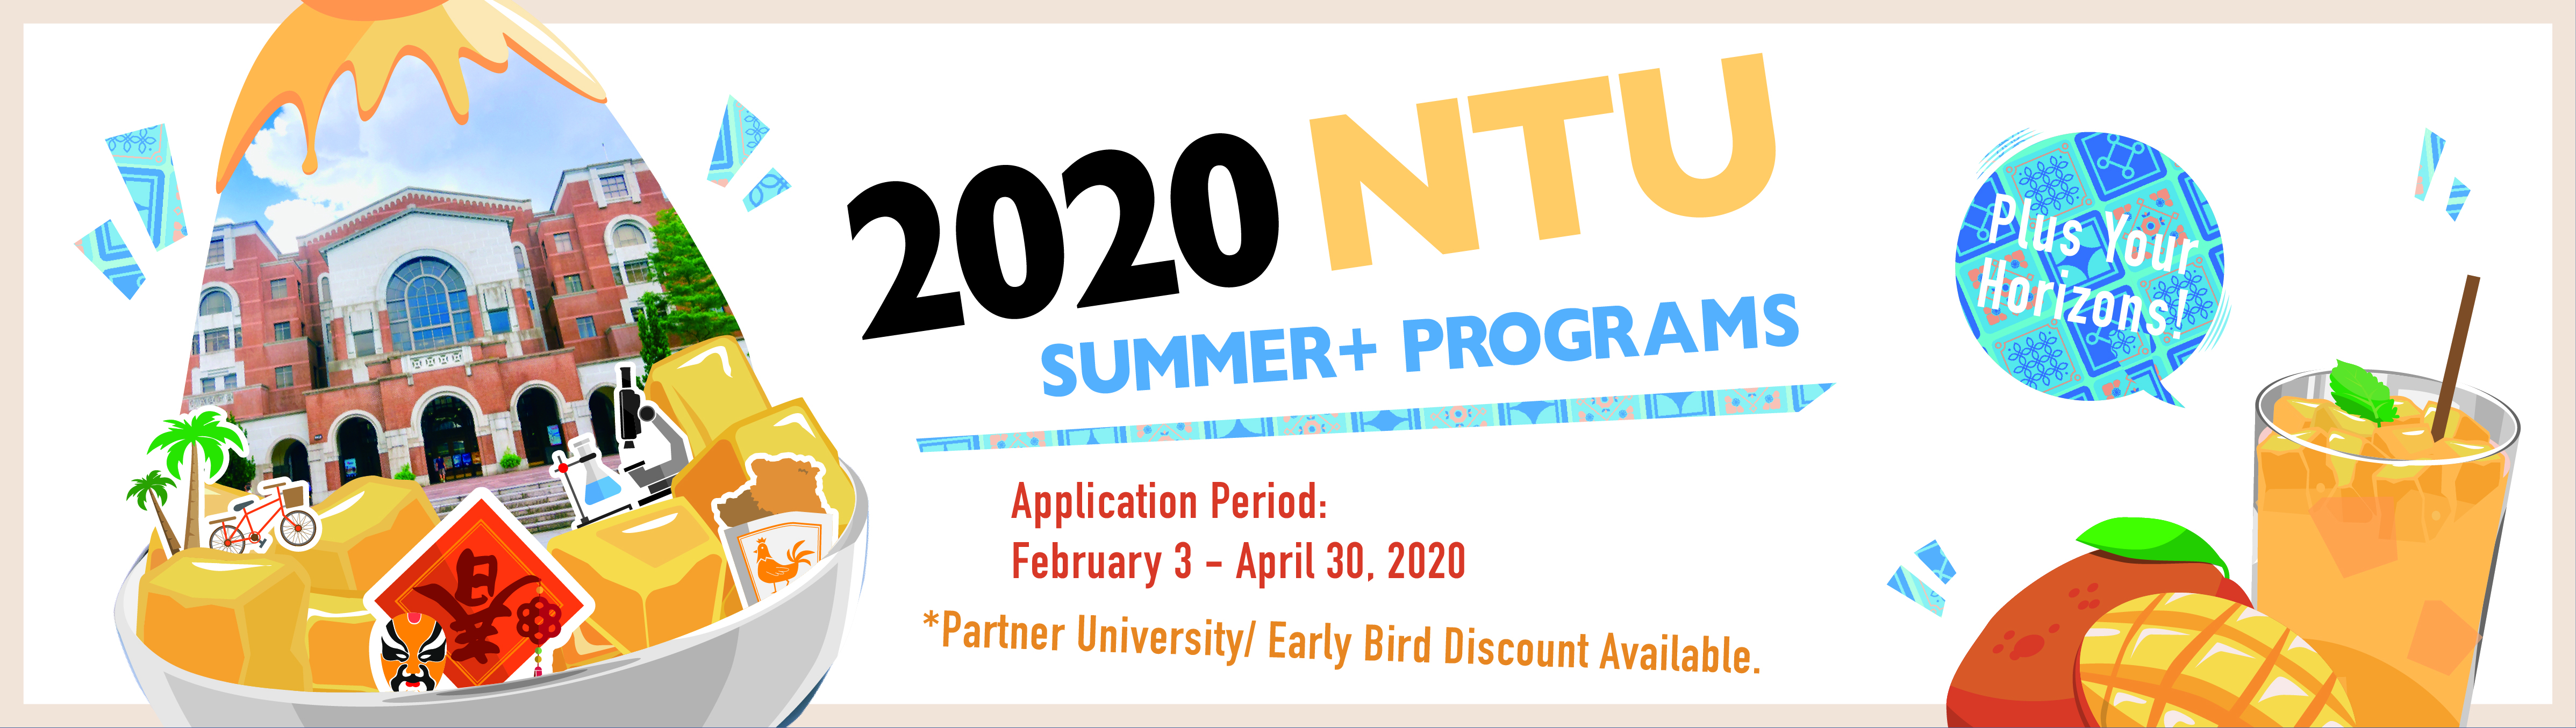 2020 NTU Summer+ Programs